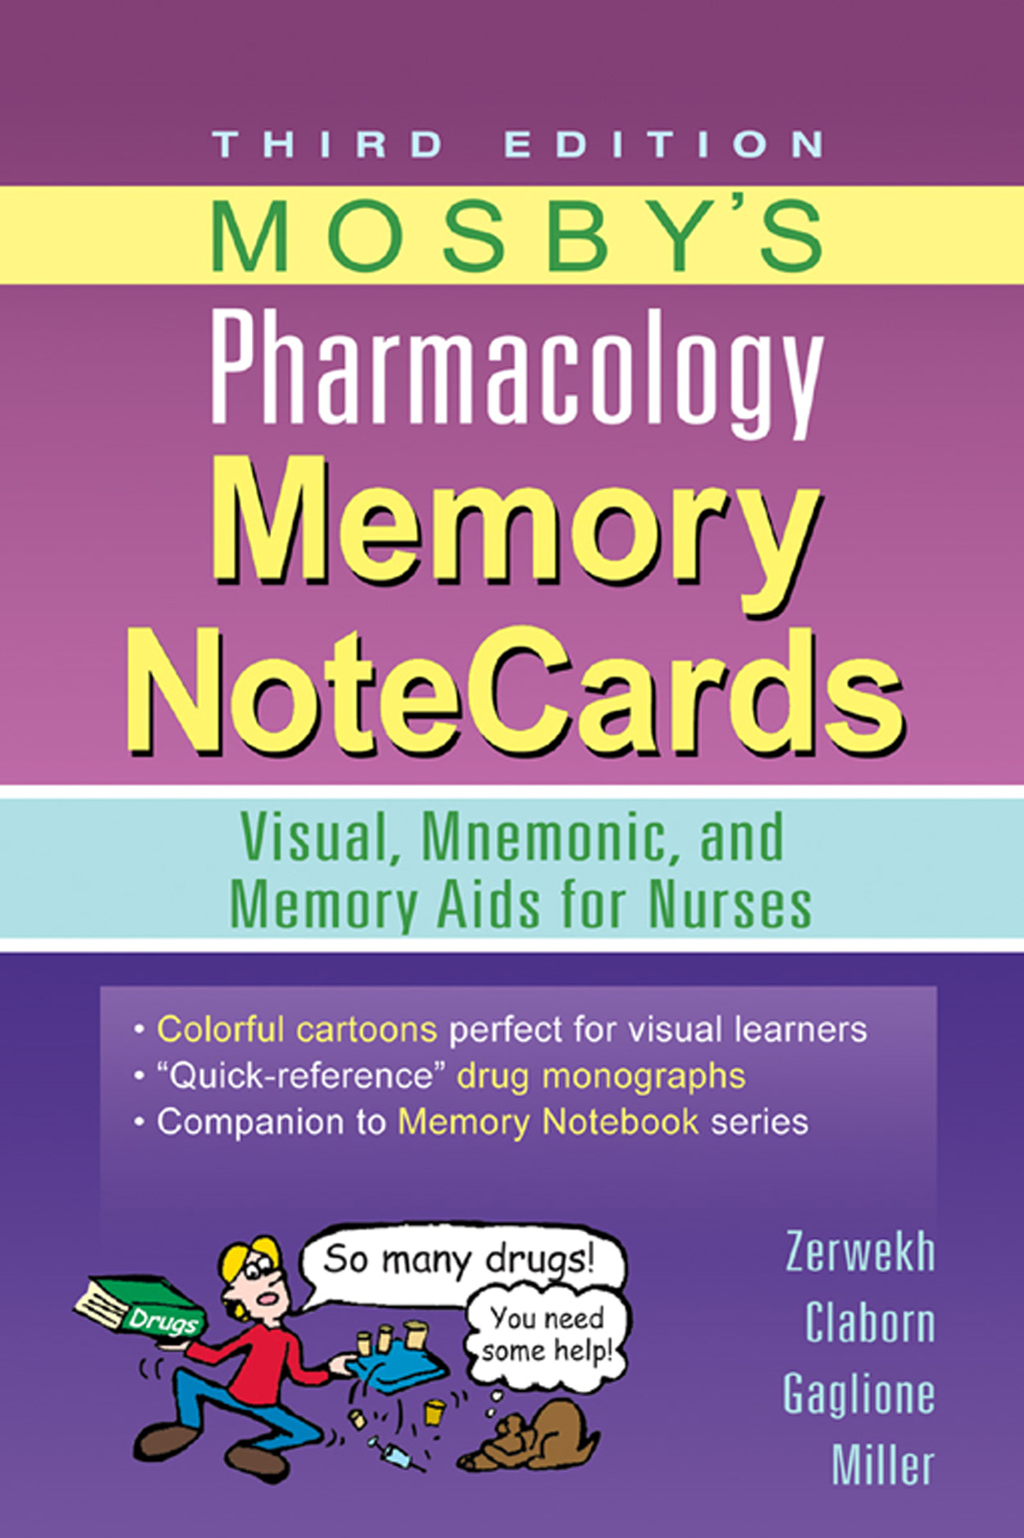 Mosby's Pharmacology Memory NoteCards Visual,  Mnemonic,  and Memory Aids for Nurses